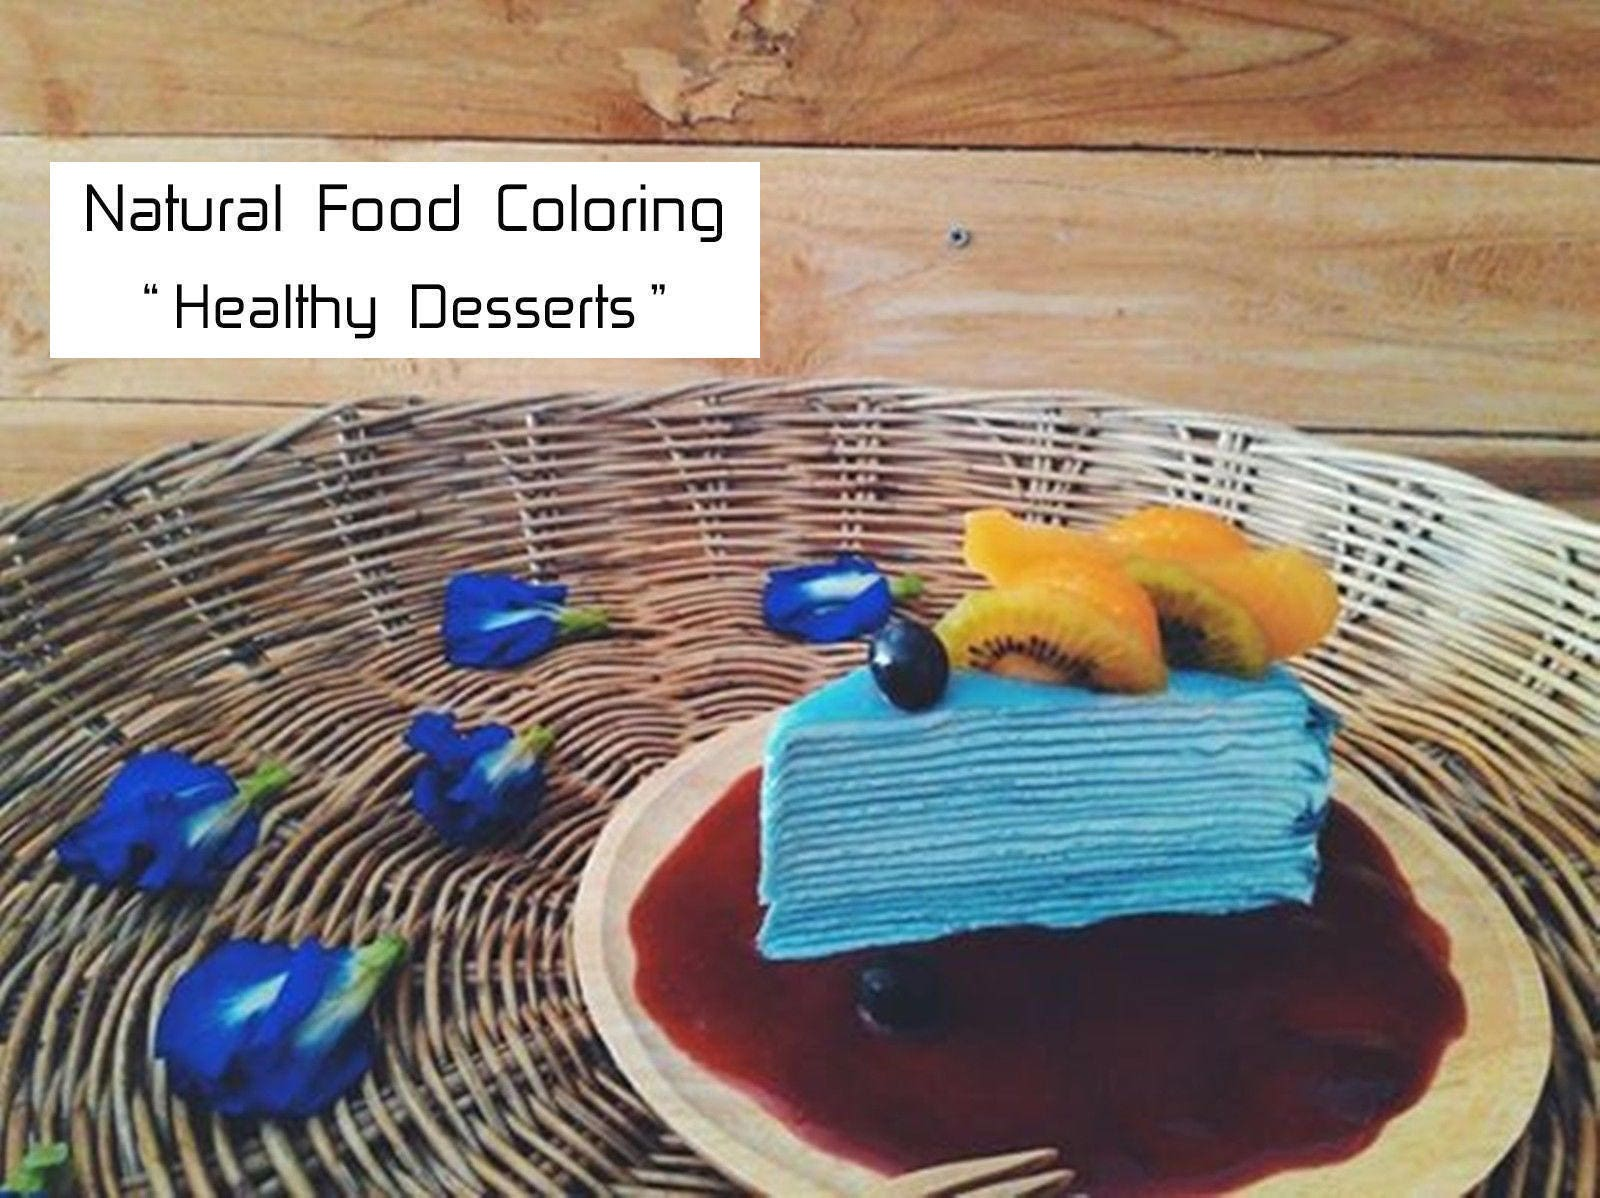 Organic Natural Food Coloring for Baking, Cake, Cookie, Food Dyes ...